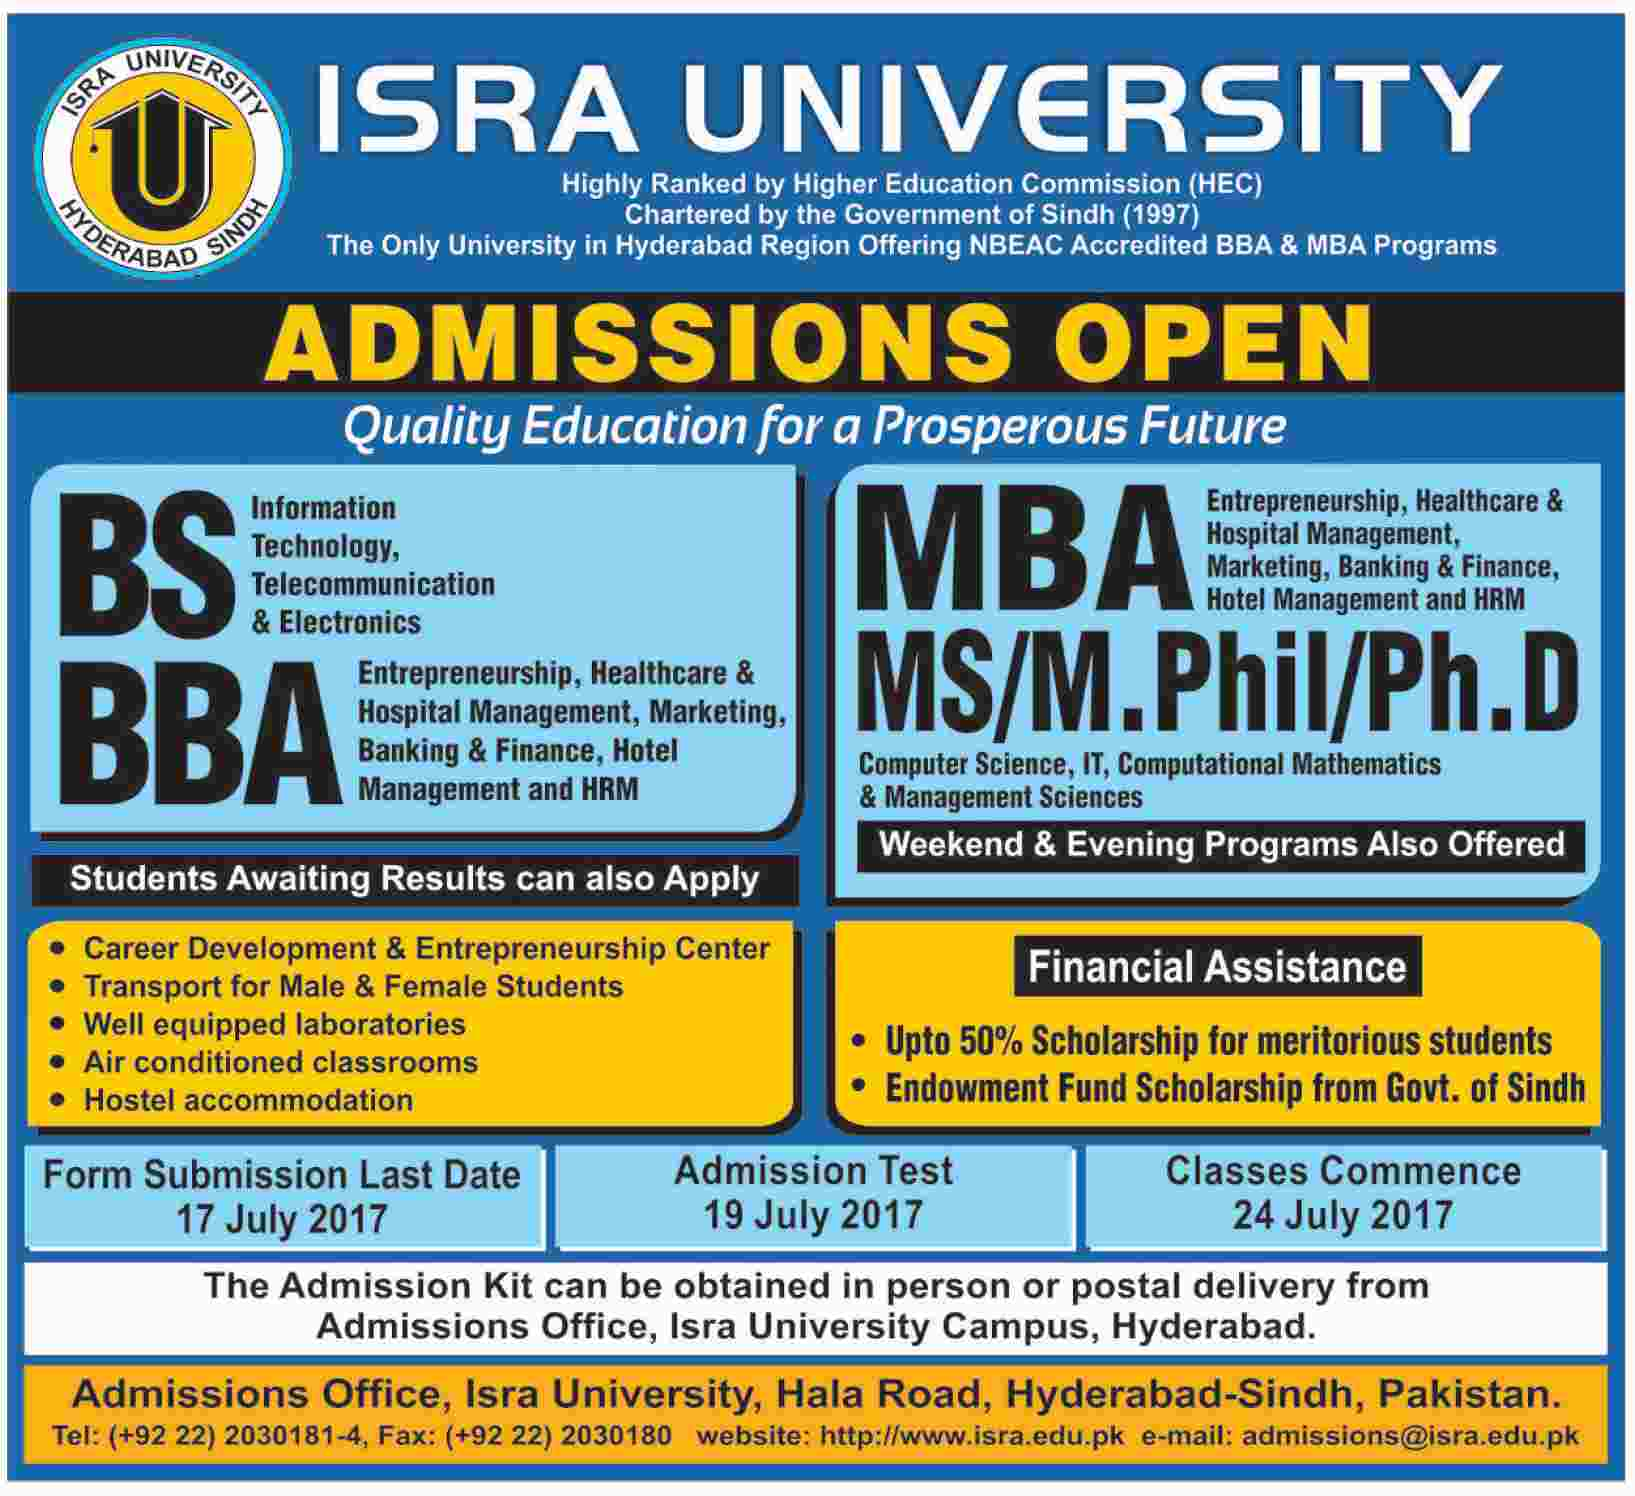 mba admission choosing a college How to choose the right mba program a master of business administration (mba) degree requires graduate-level studies at a college or university's business school.